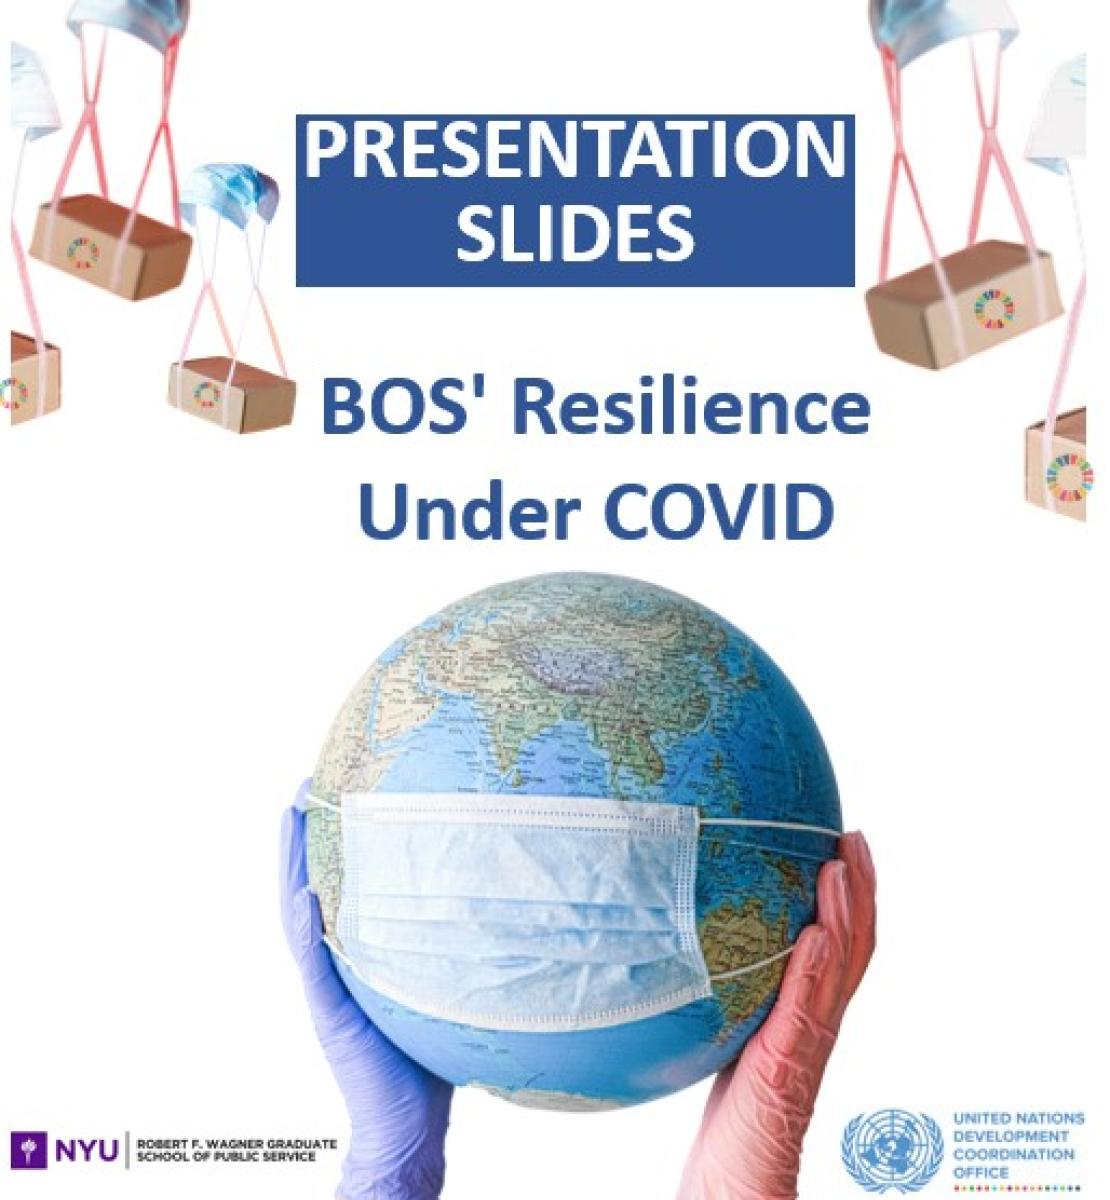 """The image reads the title """"Presentation Slides BOS' resilience under Covid: Covid 19 responses under the Business Operations Strategy. The image shows two hands with gloves holding up a 3-D globe with a face mask. There are boxes with SDG symbols coming down from the top with parachutes made of face masks."""""""